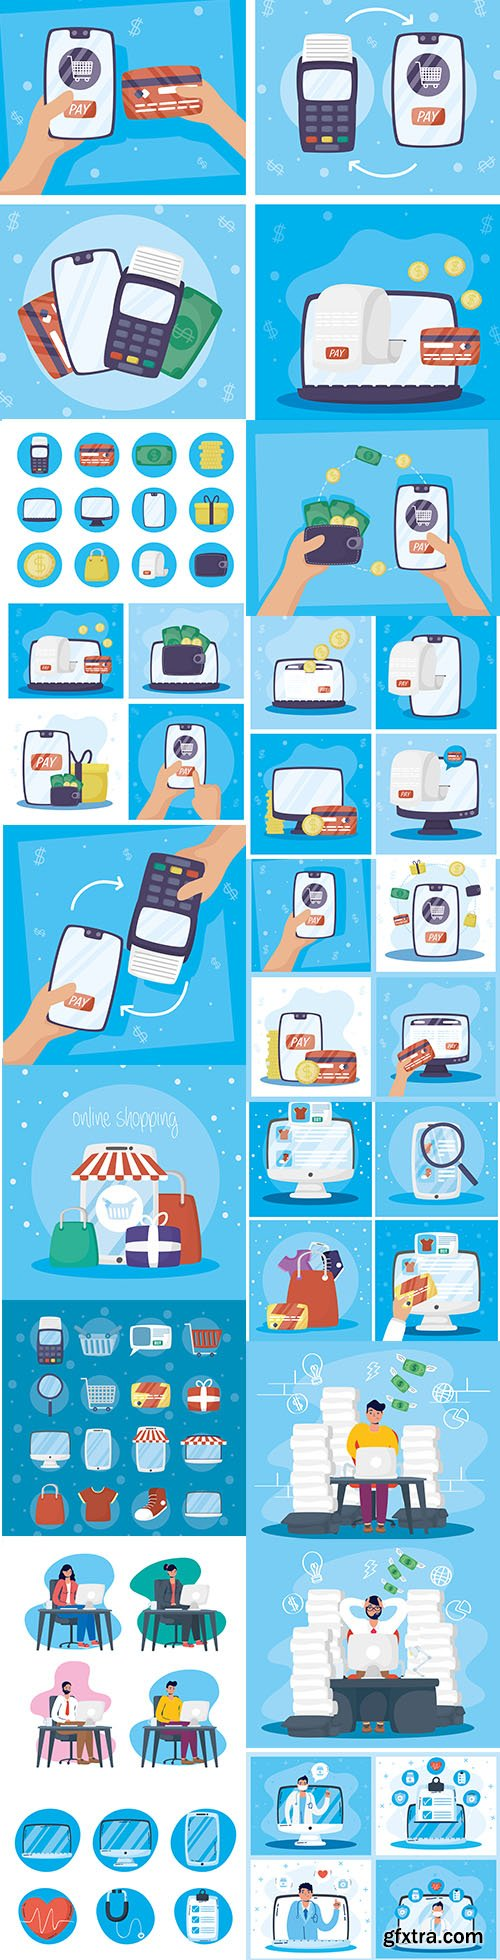 Payments and Health Online Technology with Smartphone